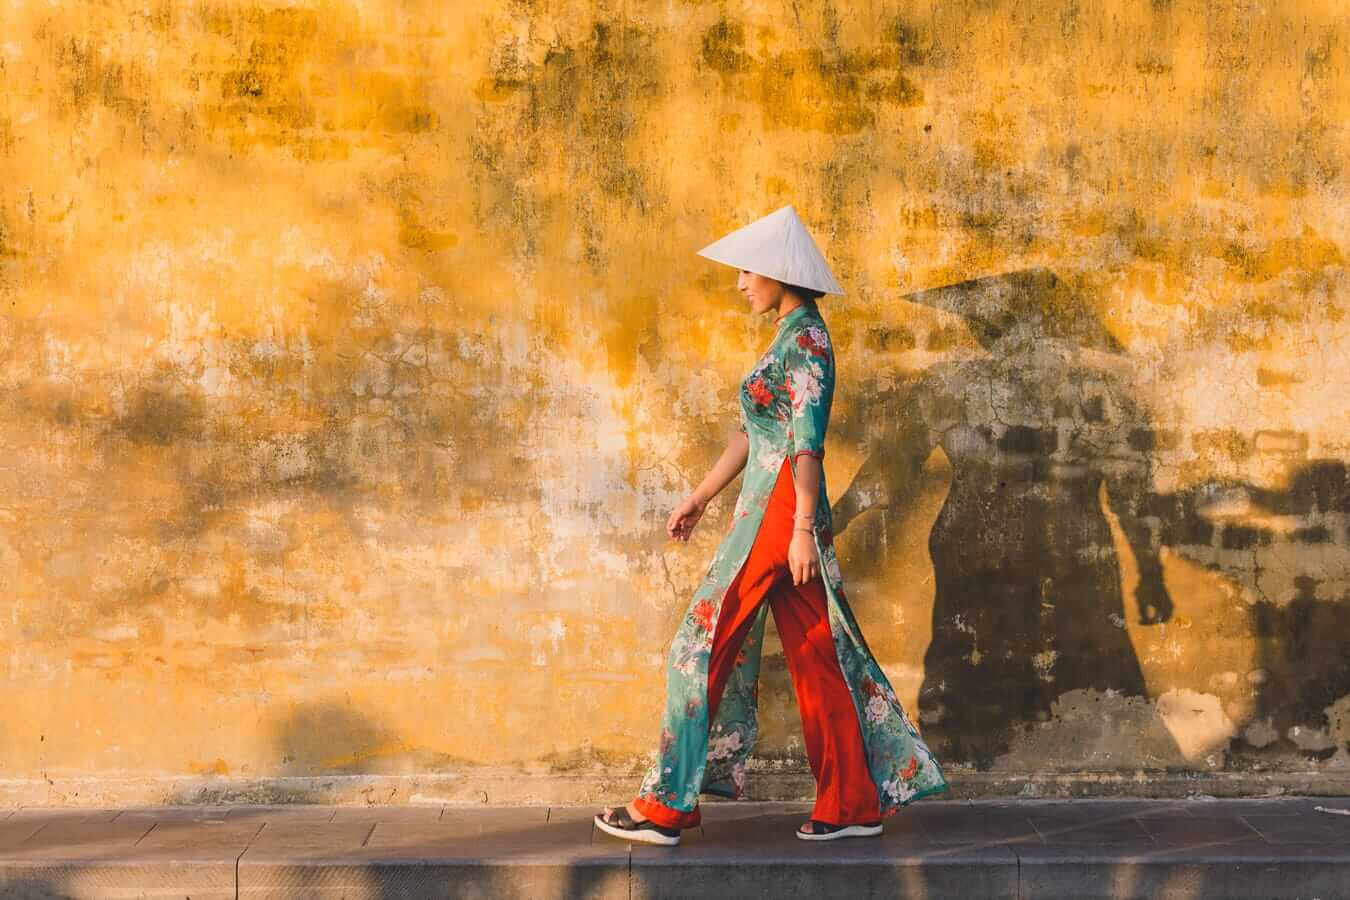 The best place to take pictures in Hoi An